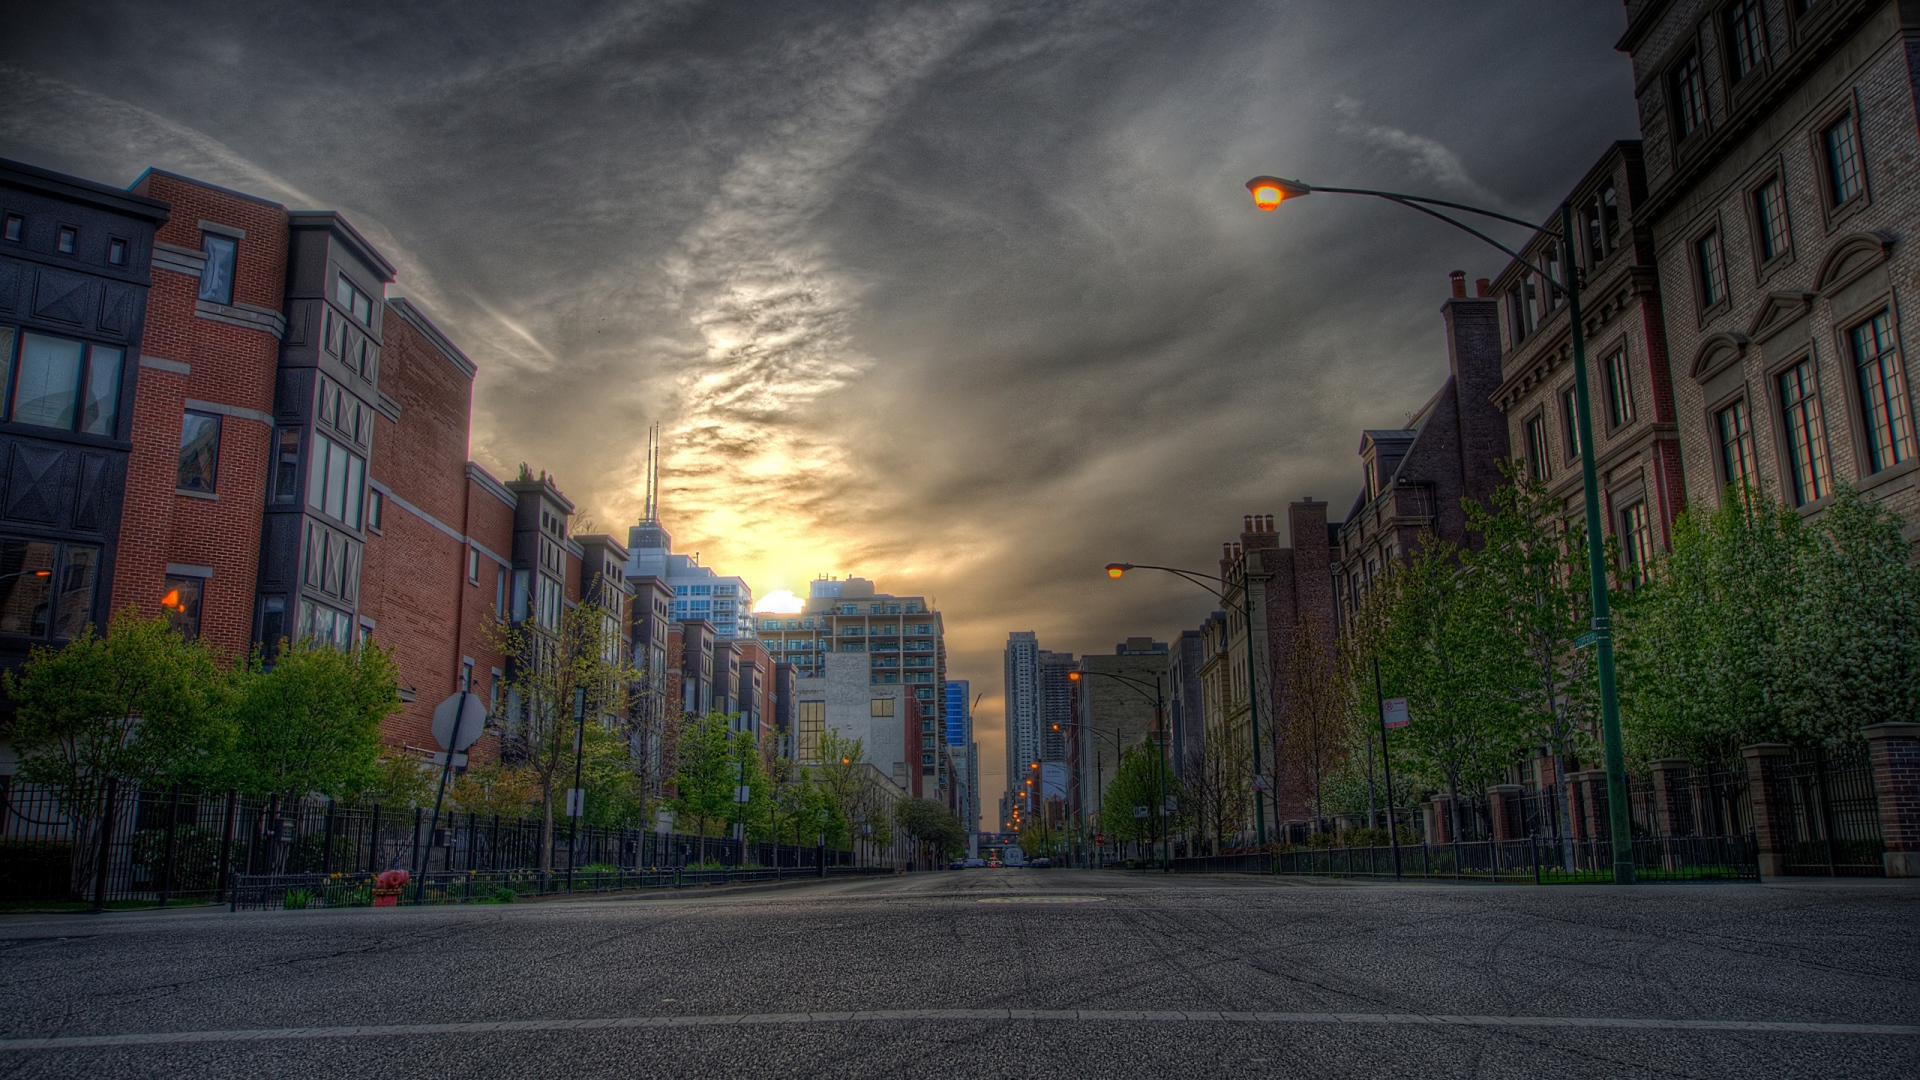 Download Wallpaper 1920x1080 House City Road Street Hdr Full HD